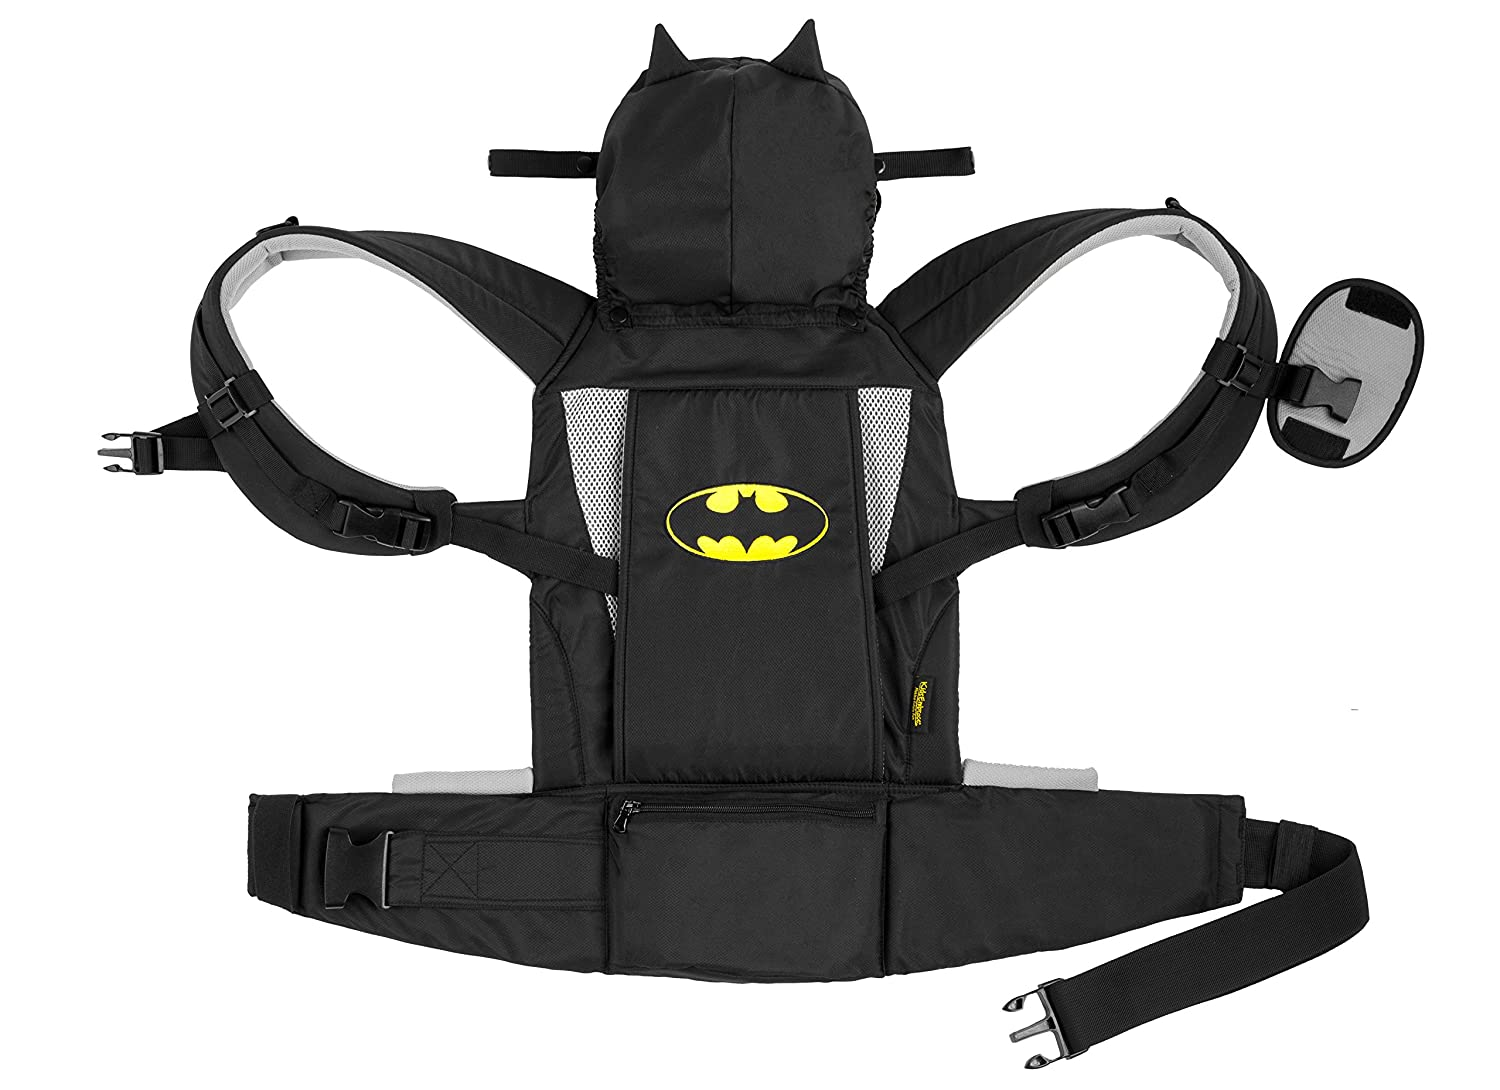 KidsEmbrace Batman Baby Carrier, DC Comics Deluxe Carrier with Hood, Black